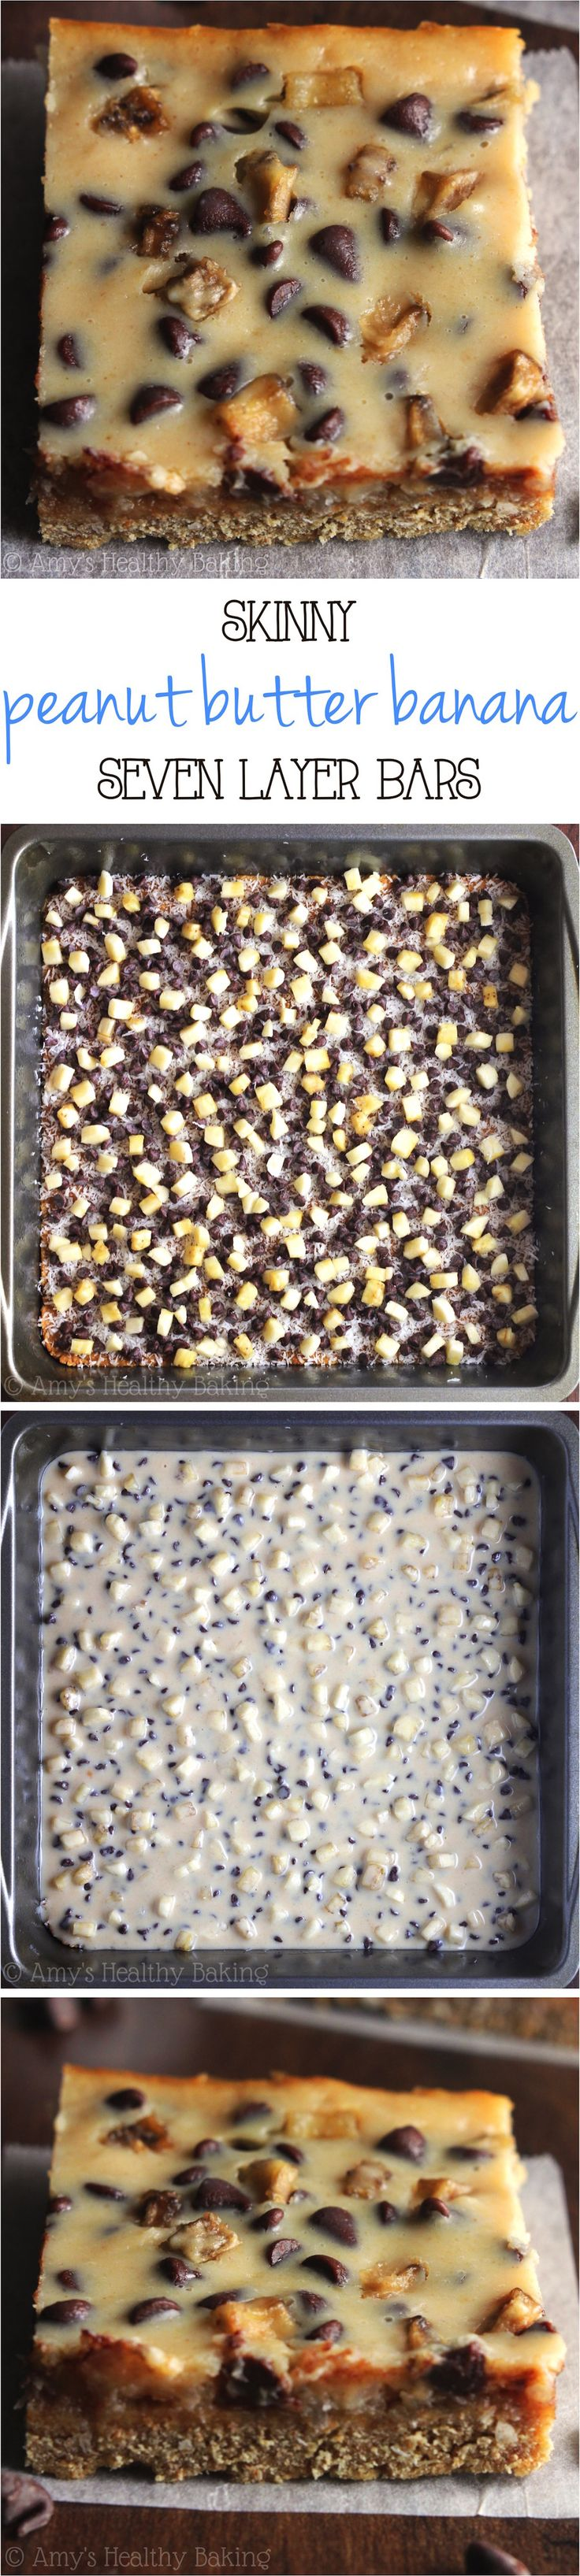 Skinny Peanut Butter Banana Seven Layer Bars – with 3 simple swaps, these magic bars have all of the dec